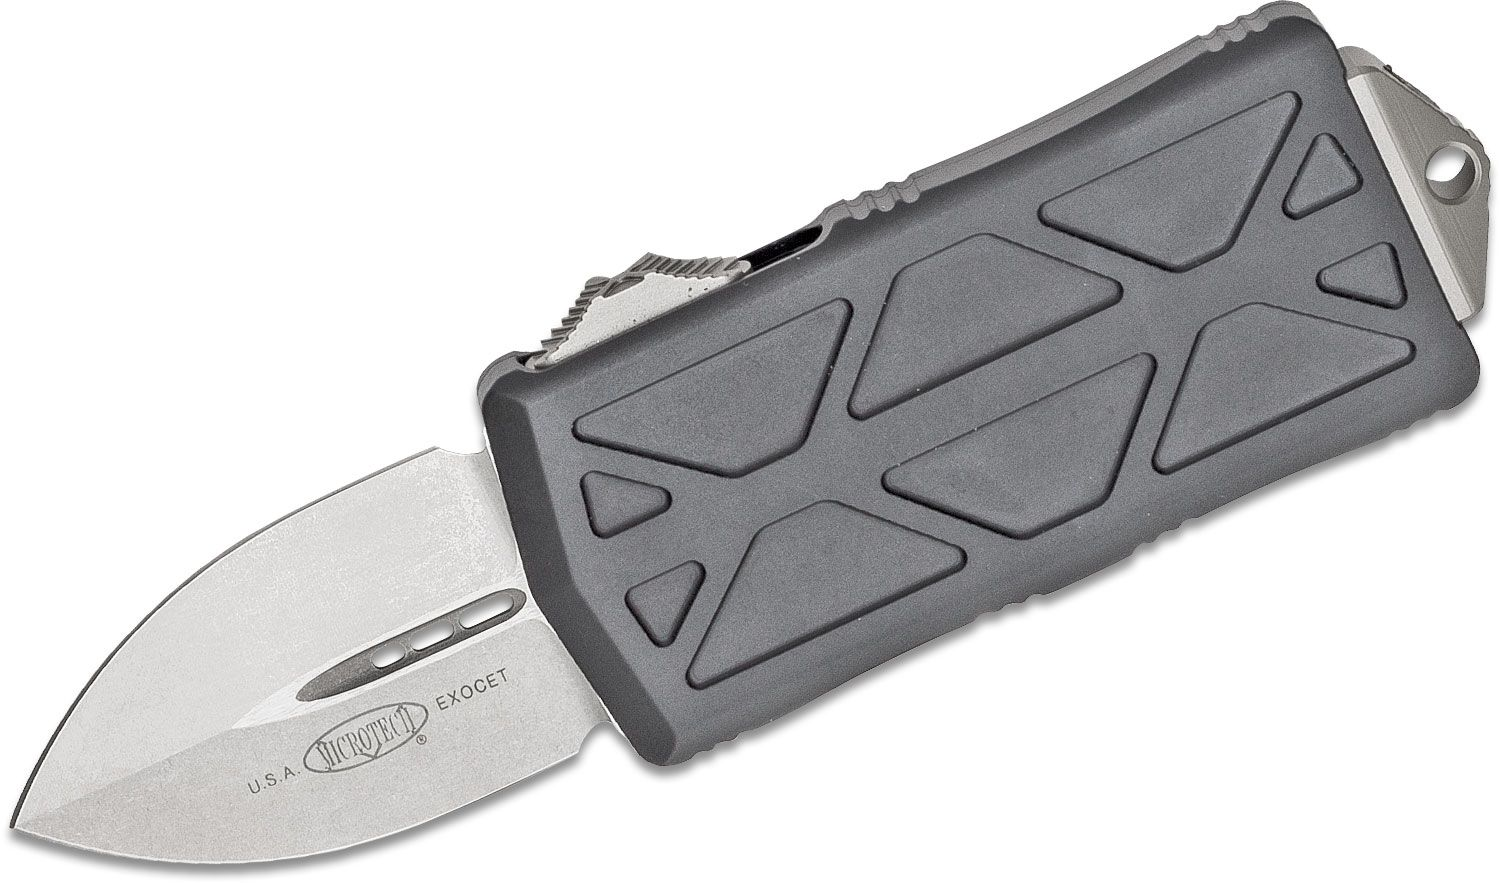 Microtech 157-10 Exocet OTF Money Clip AUTO Knife 1.98 inch Stonewashed Double Edge Blade, Black Aluminum Handles